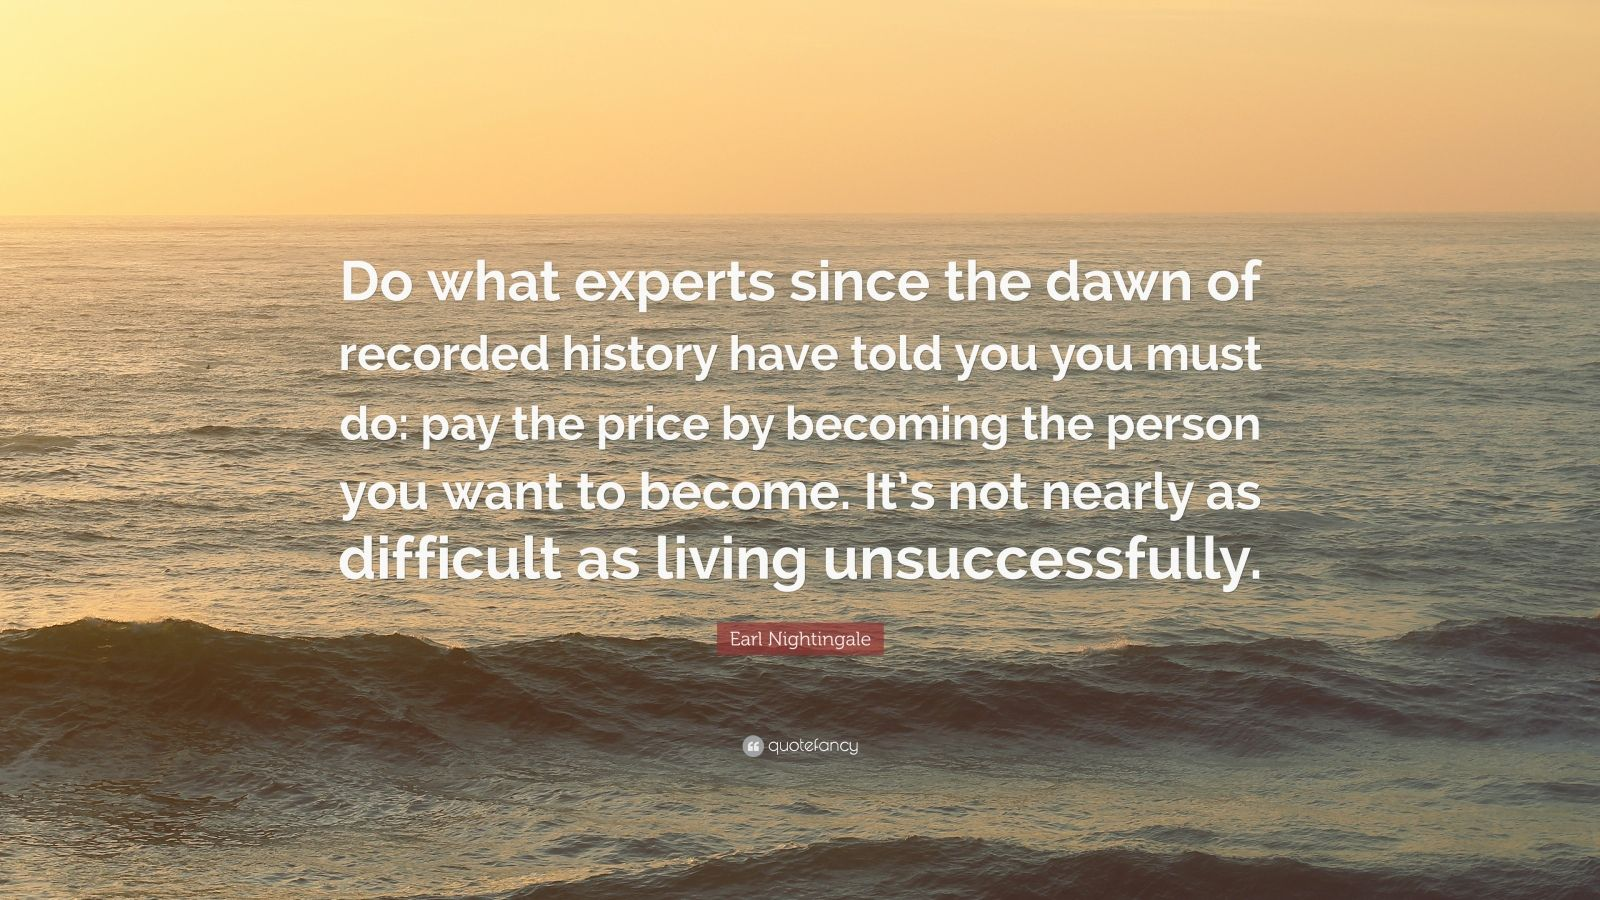 "Earl Nightingale Quote: ""Do what experts since the dawn of recorded history have told you you must do: pay the price by becoming the person you want to become. It's not nearly as difficult as living unsuccessfully."""